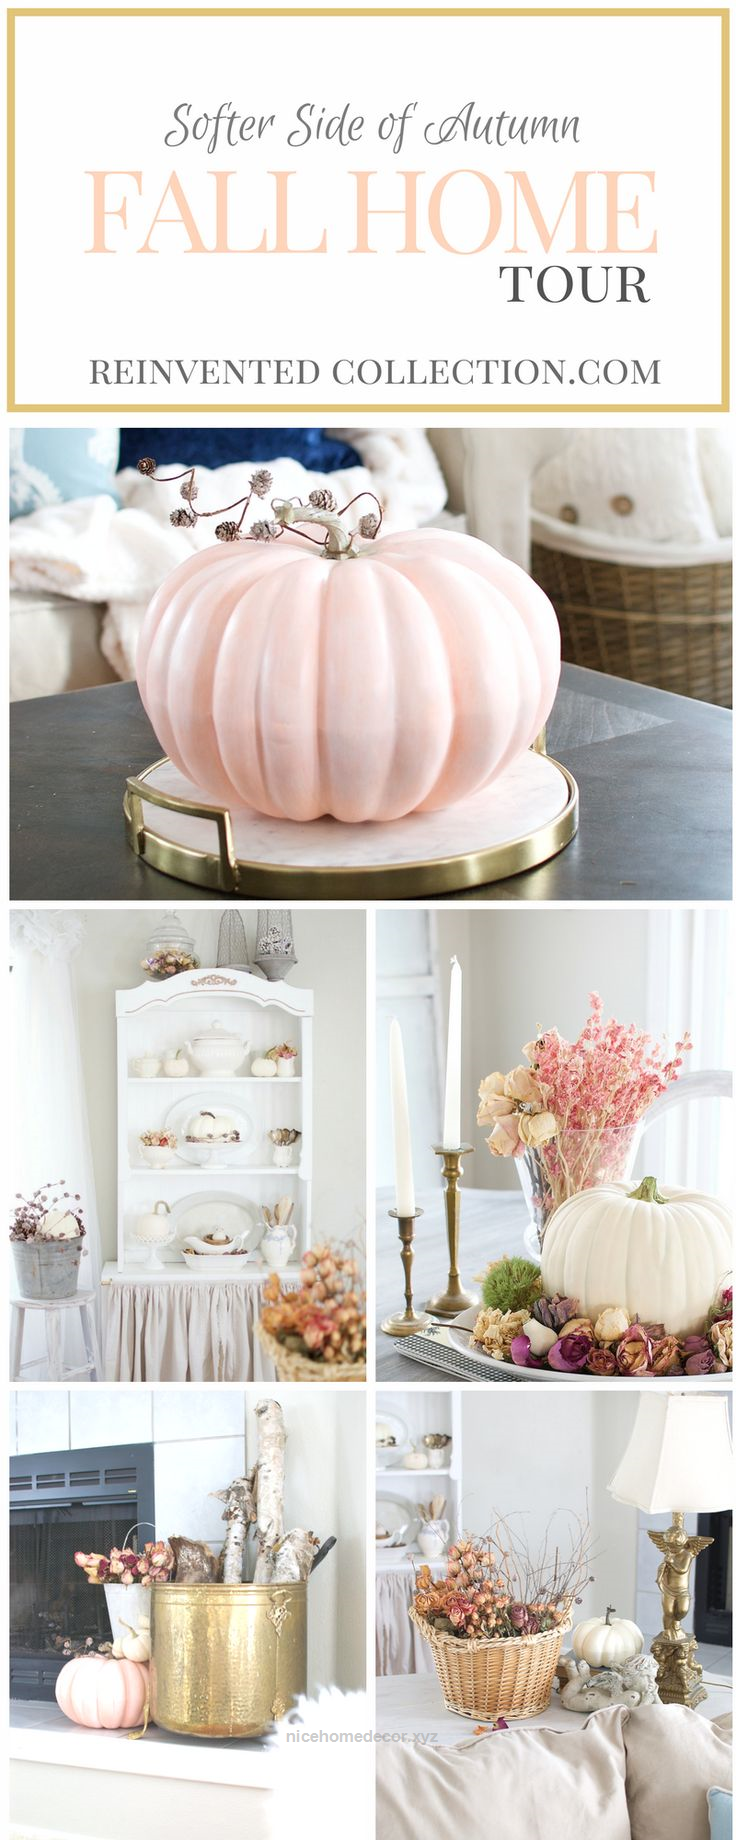 Fall Home Tour 2016 | Pinterest | Country fall, Decor styles and ...